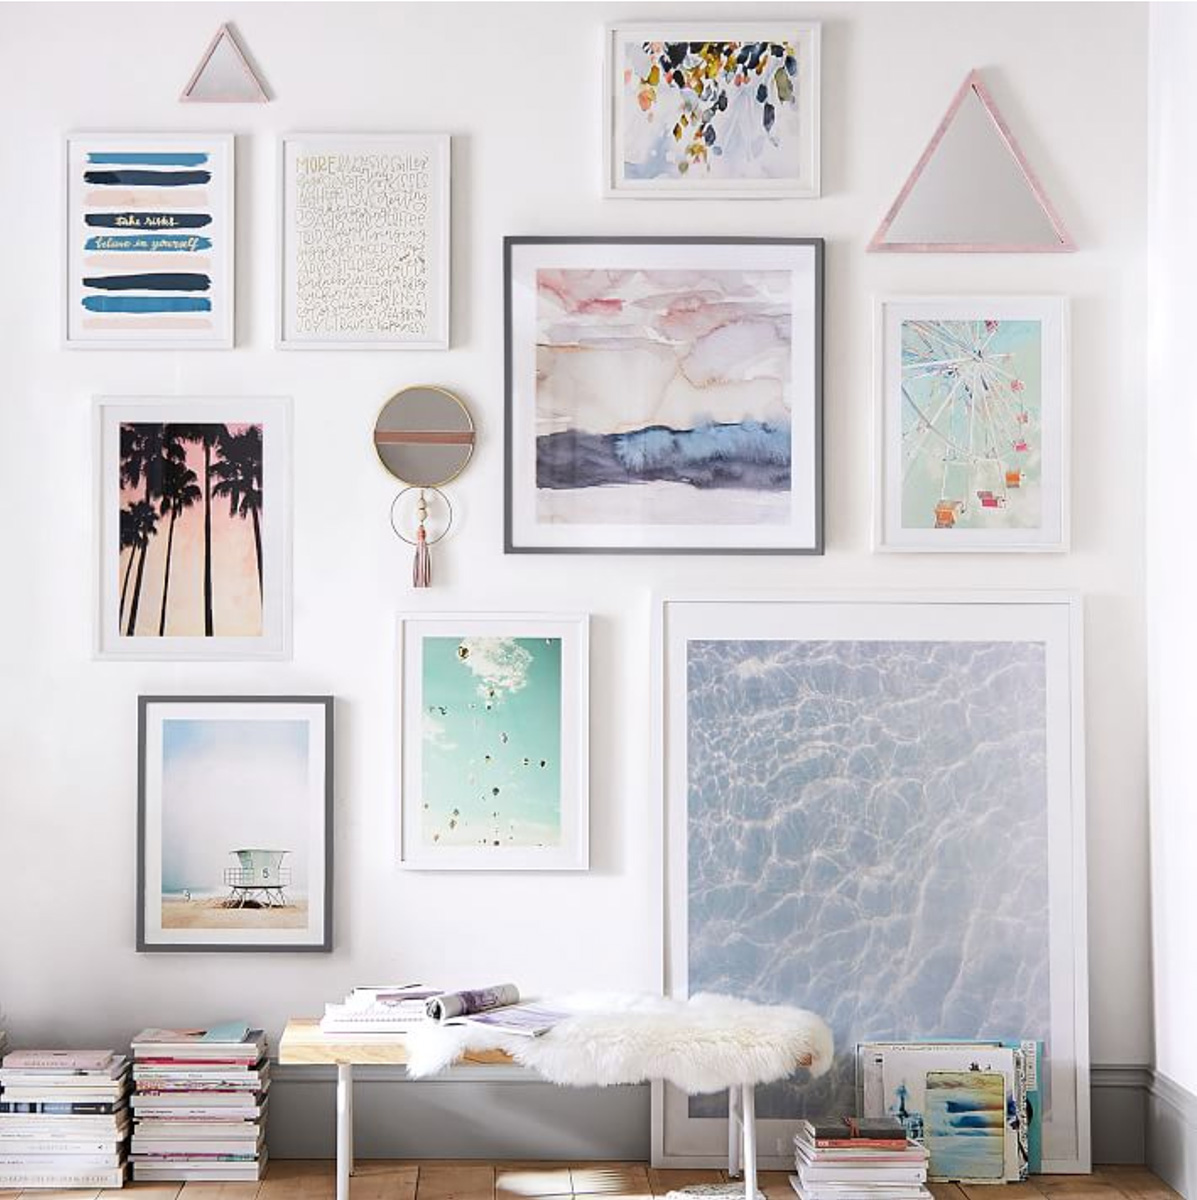 """Wave Patterns""  (bottom right),   available at Pottery Barn Teen (interior photo by Pottery Barn Teen)"